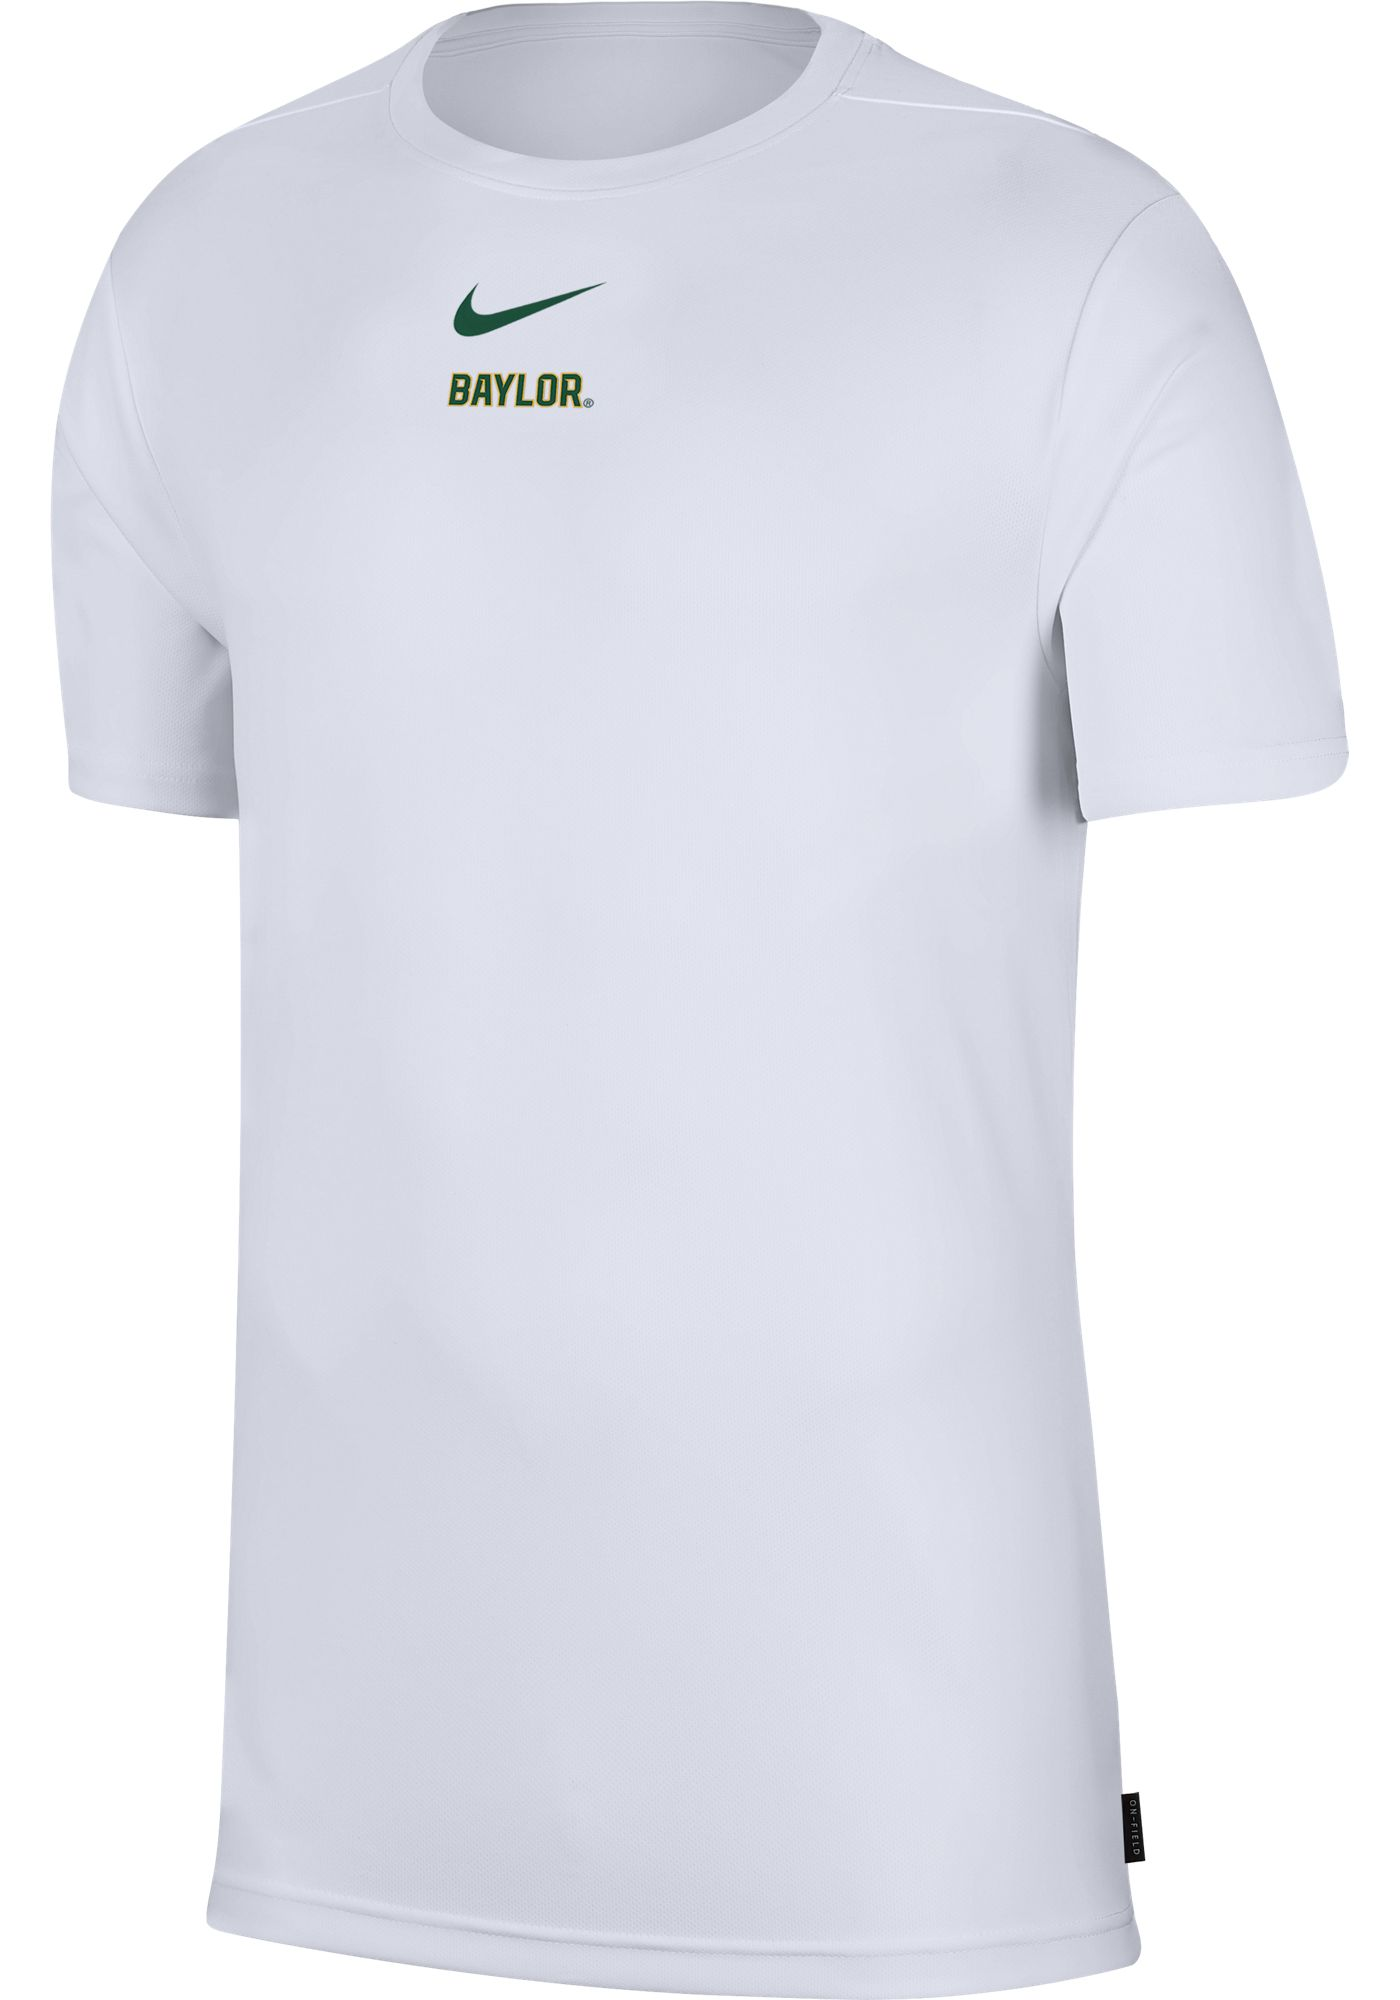 Nike Men's Baylor Bears Dri-FIT Coach UV Football White T-Shirt